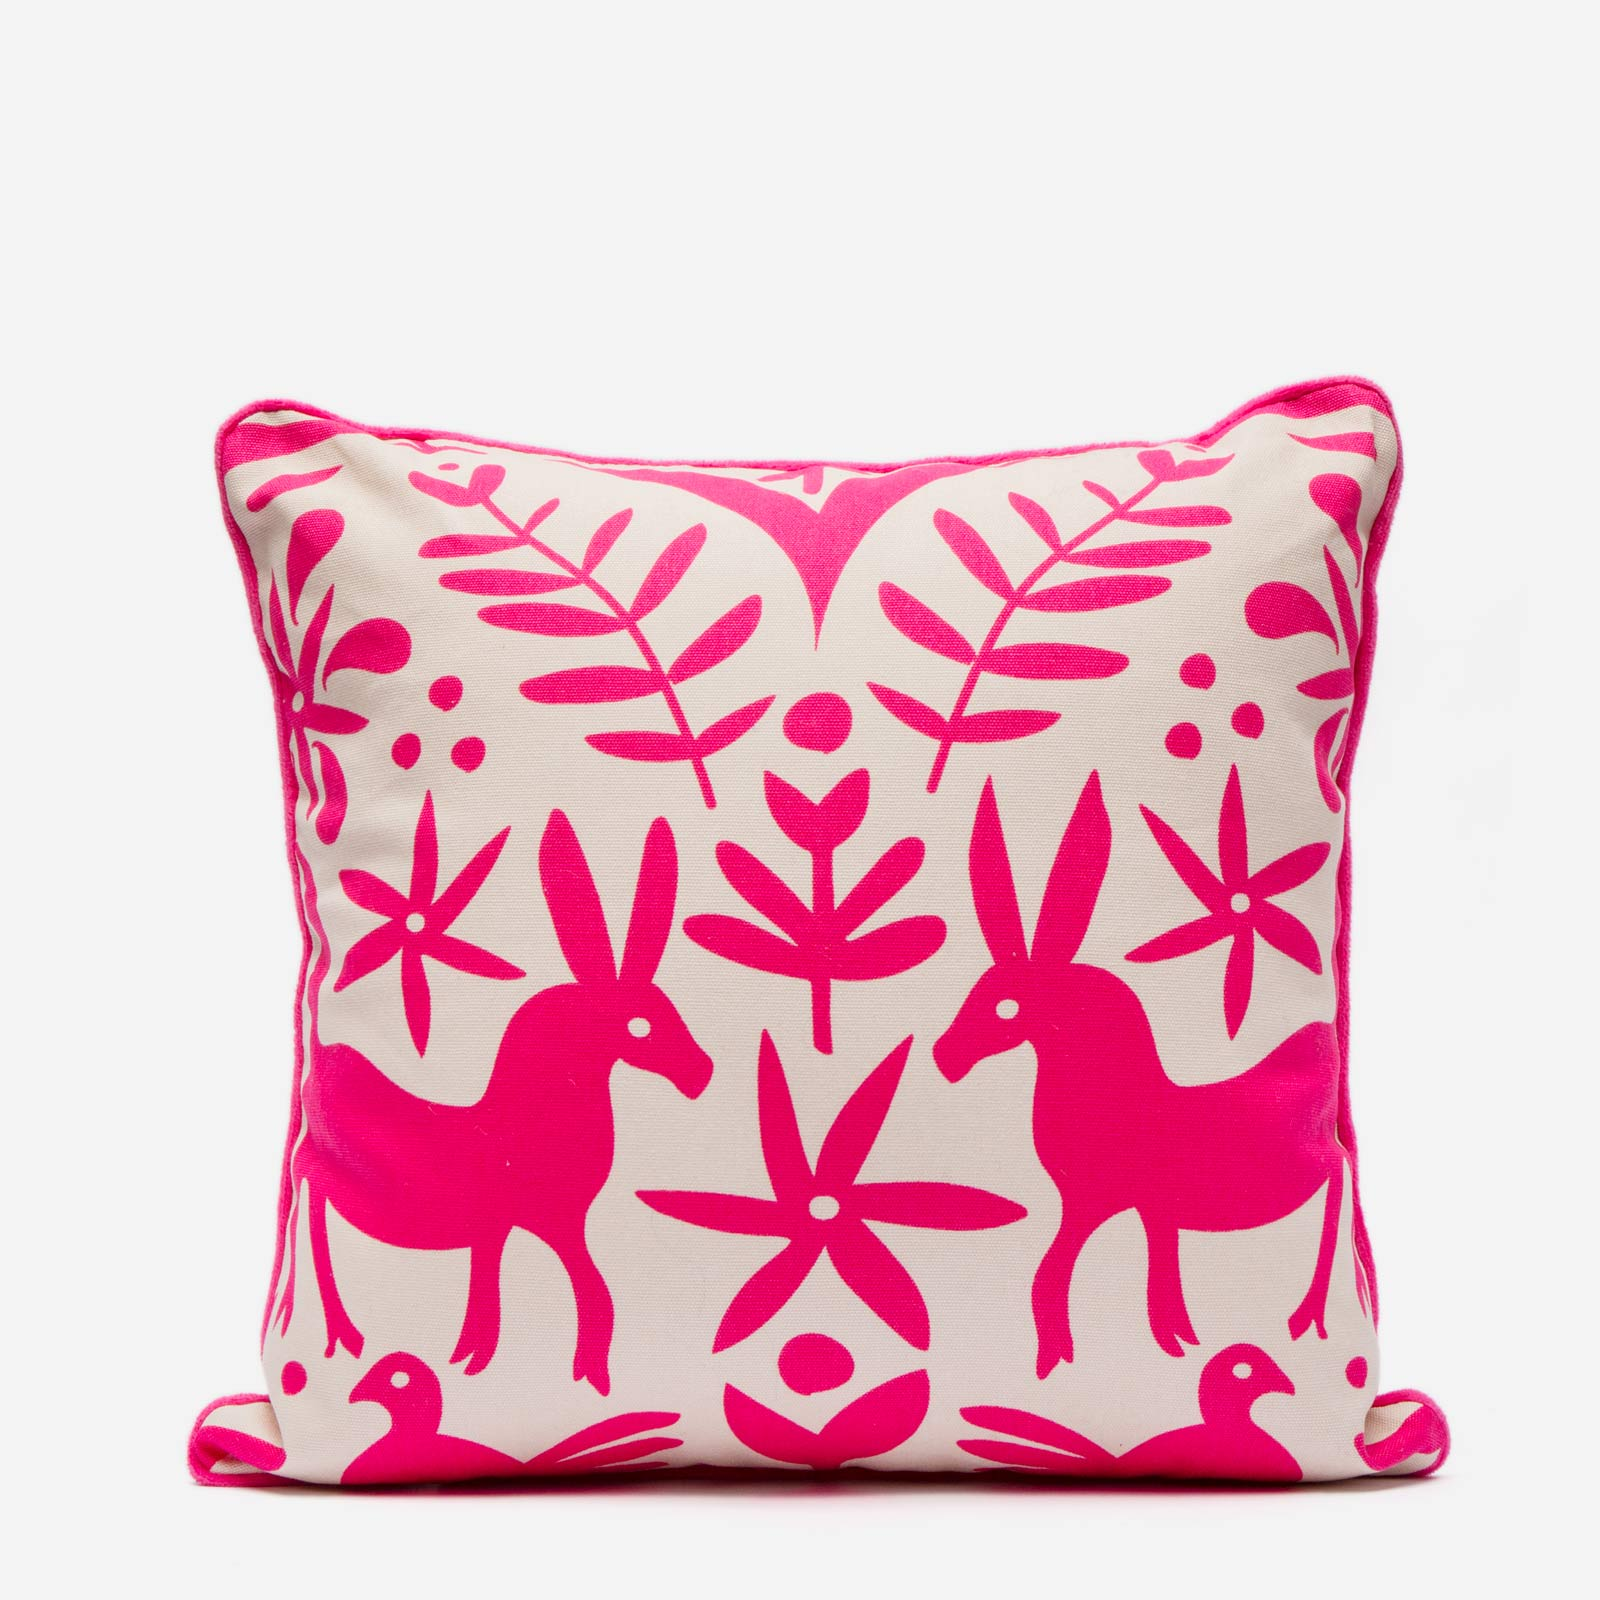 Veracruz Throw Pillow Pink